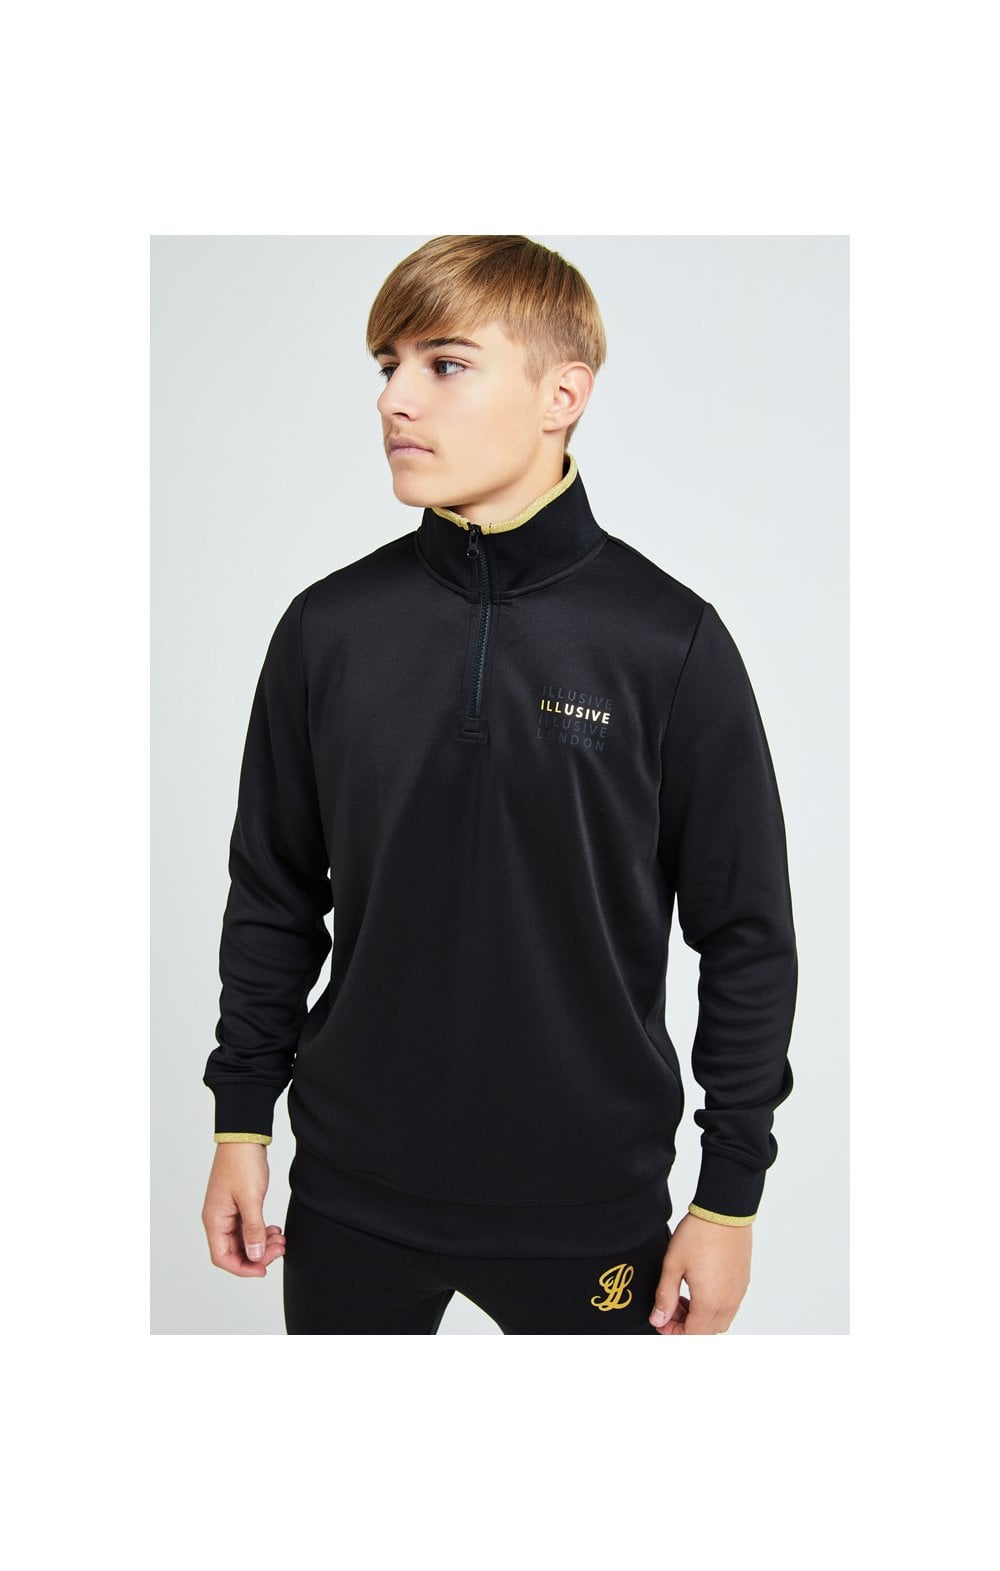 Load image into Gallery viewer, Illusive London Sovereign 1/4 Zip Hoodie  - Black & Gold (2)